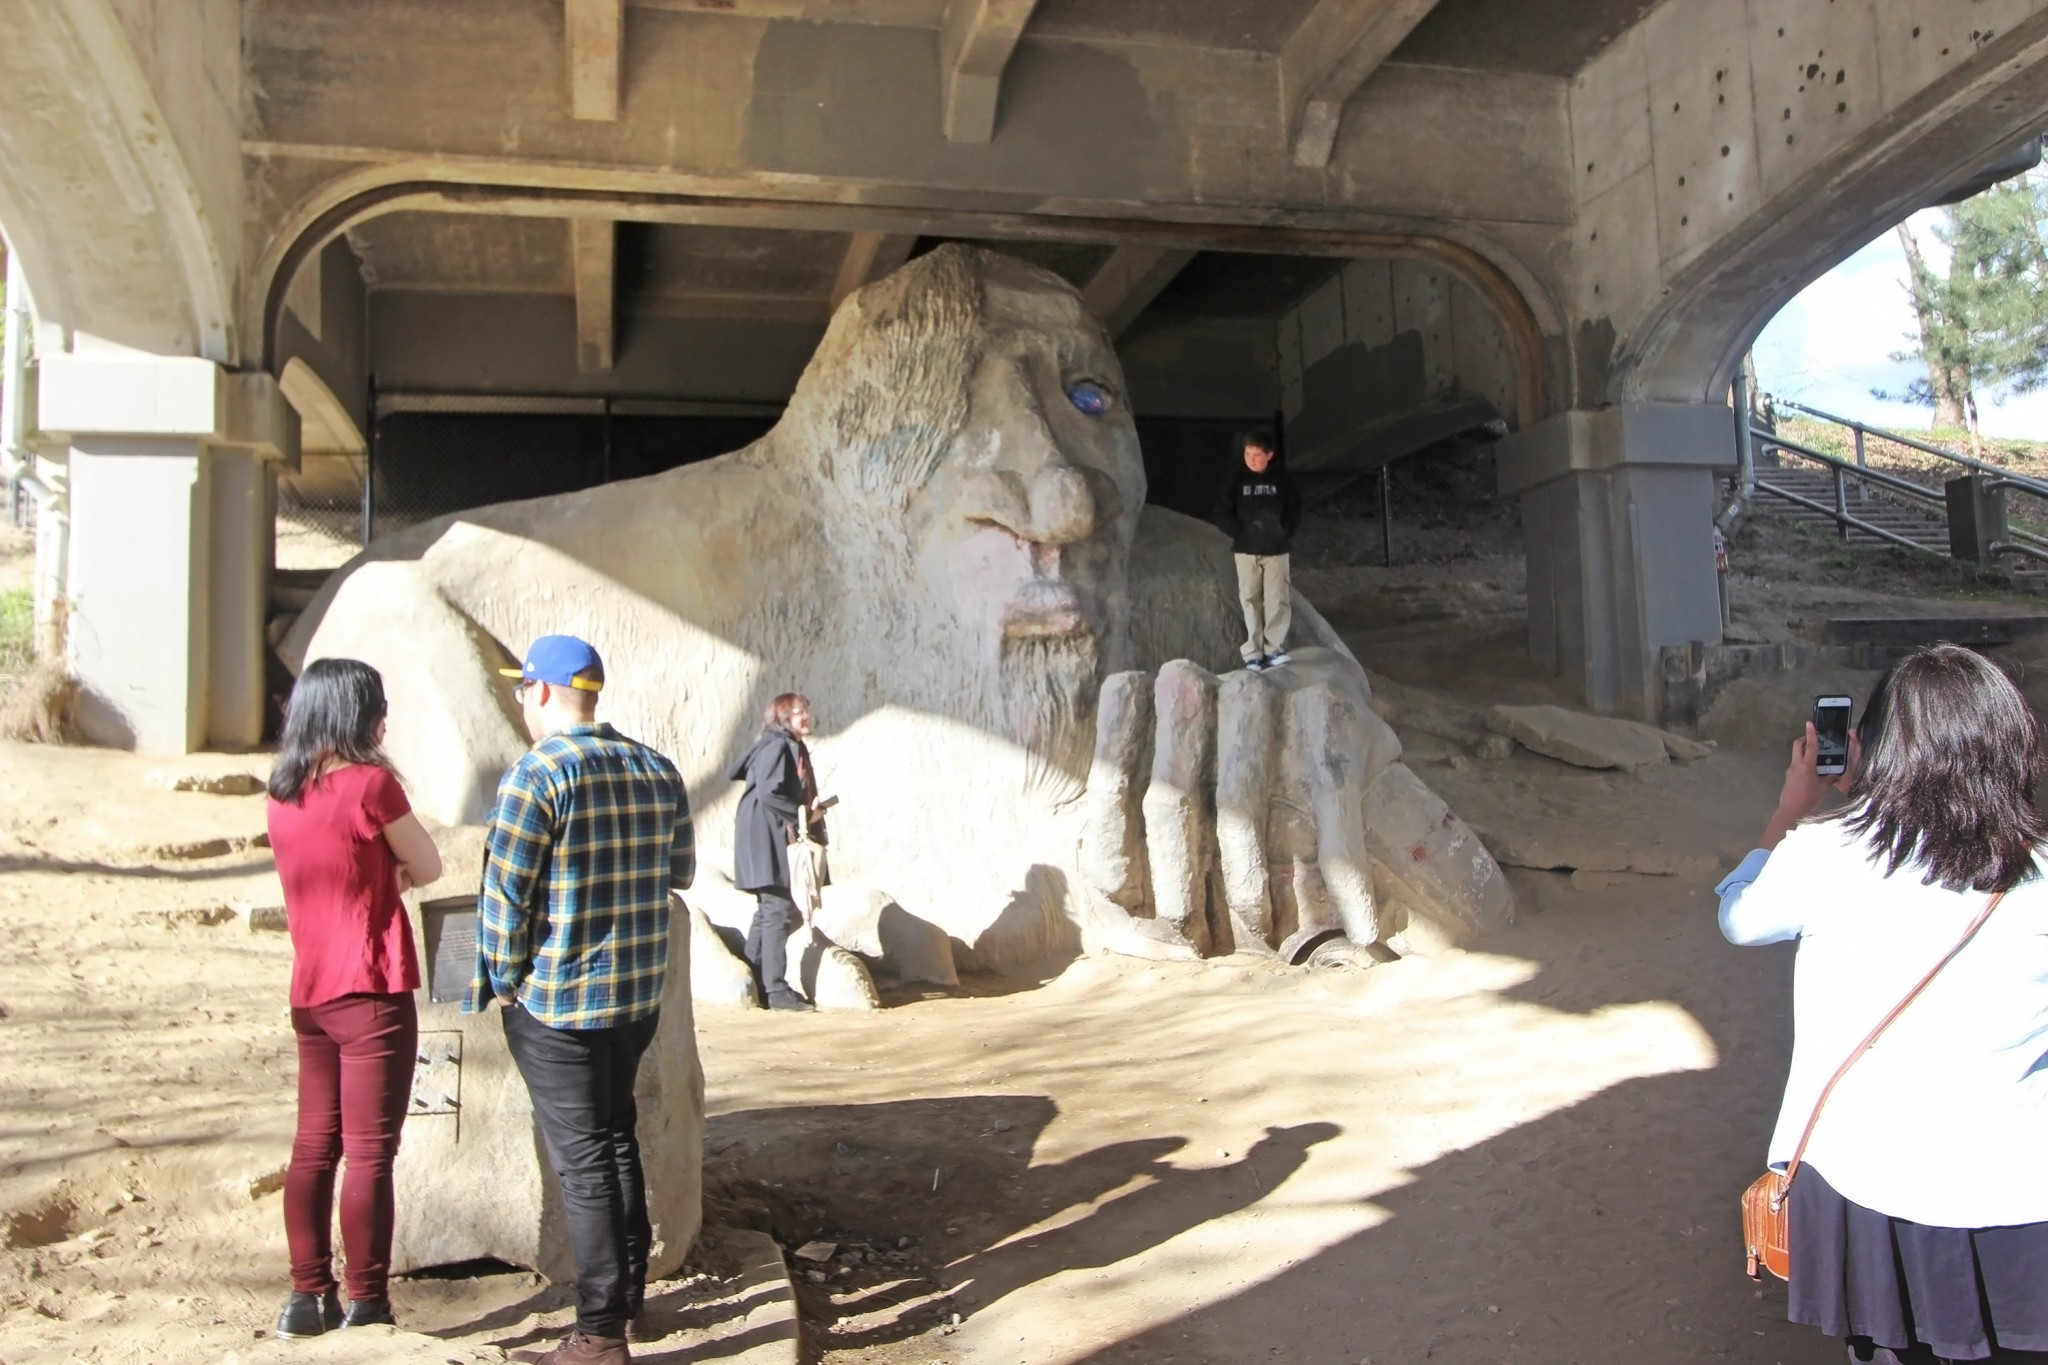 The Fremont Troll in Seattle, Washington.